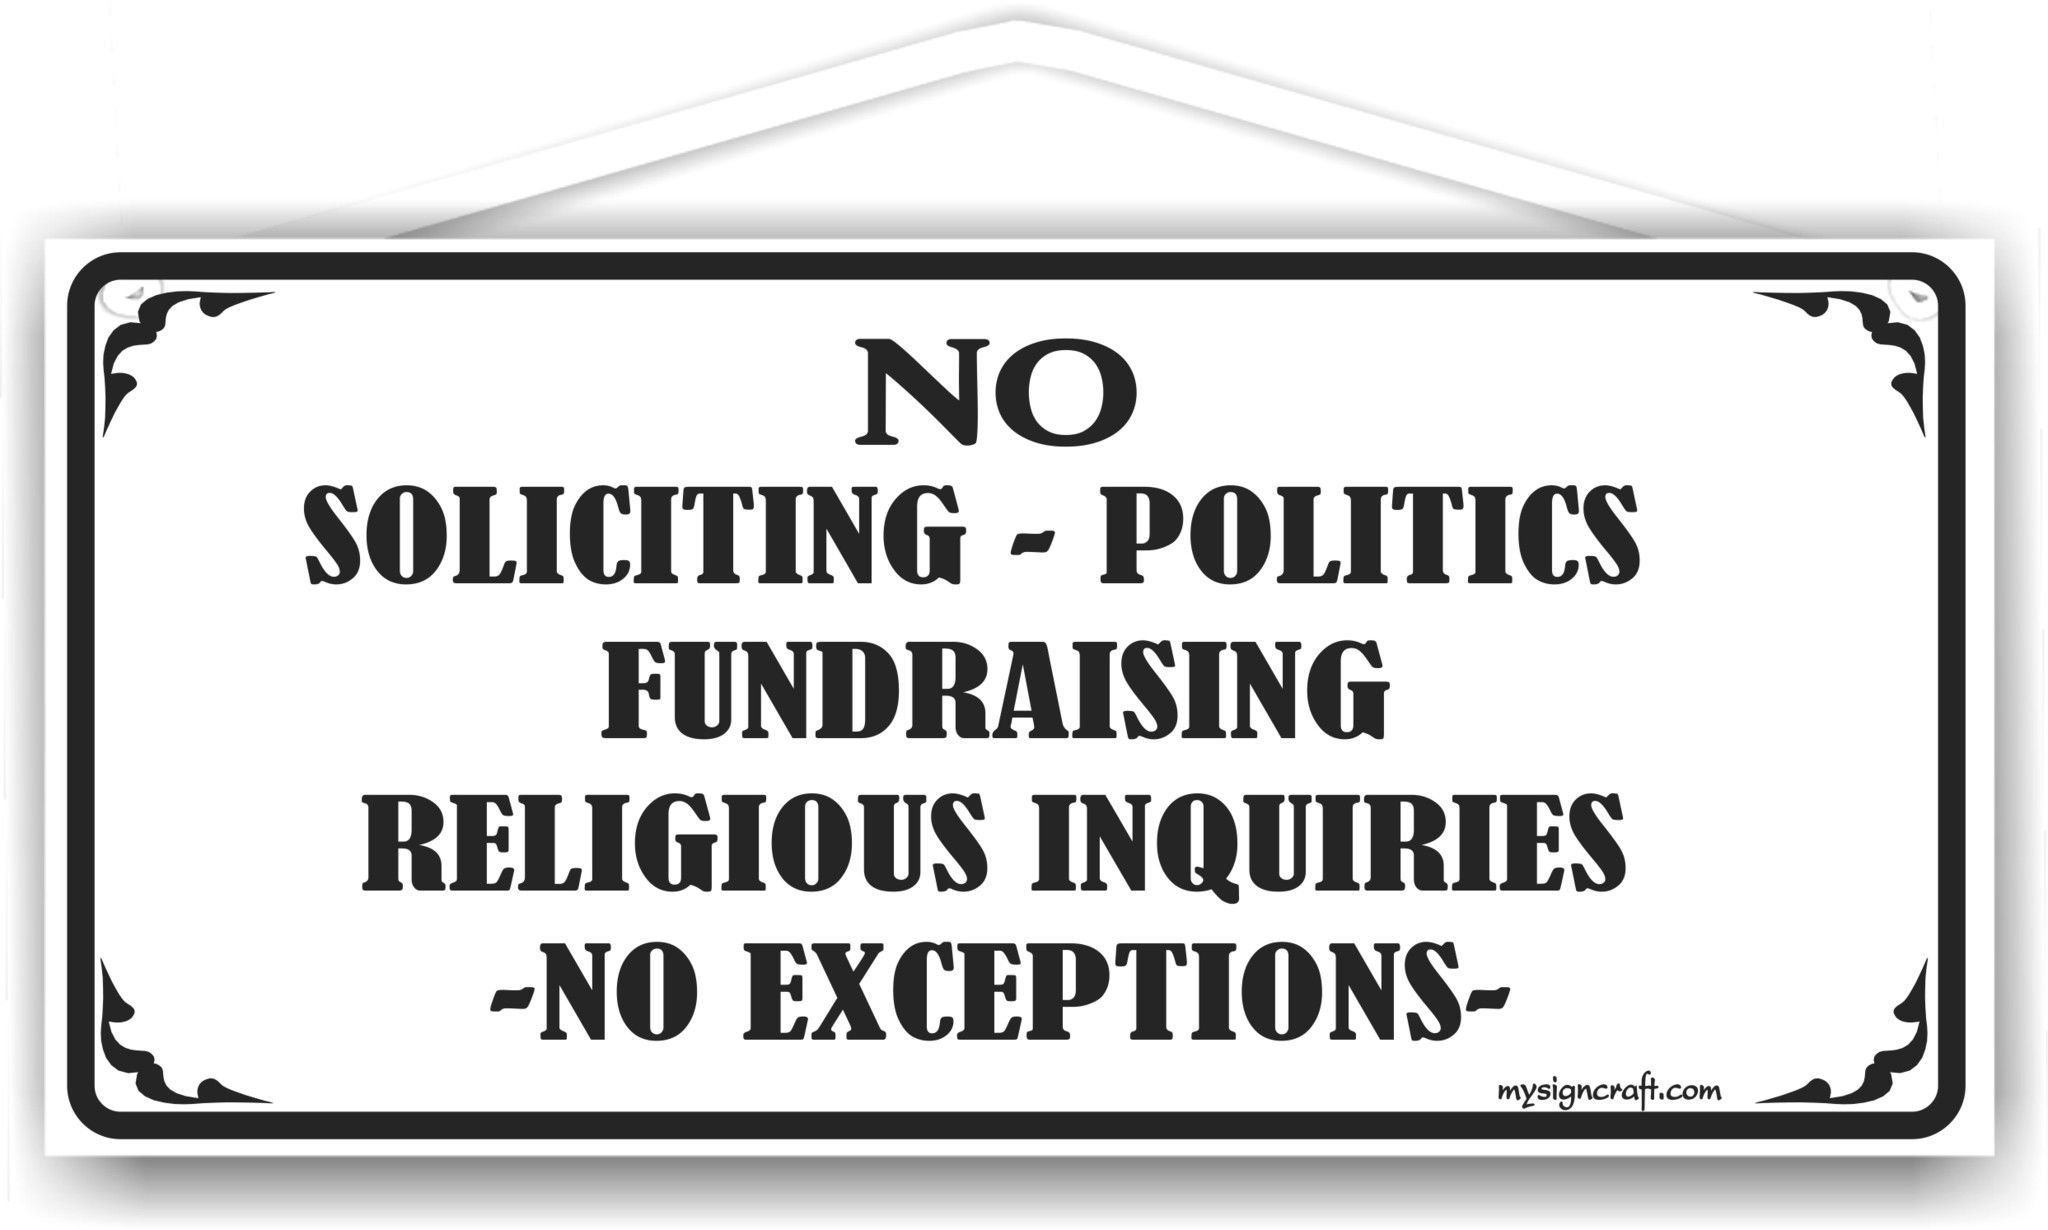 no soliciting politics fundraising sign with pinline border by mysigncraft